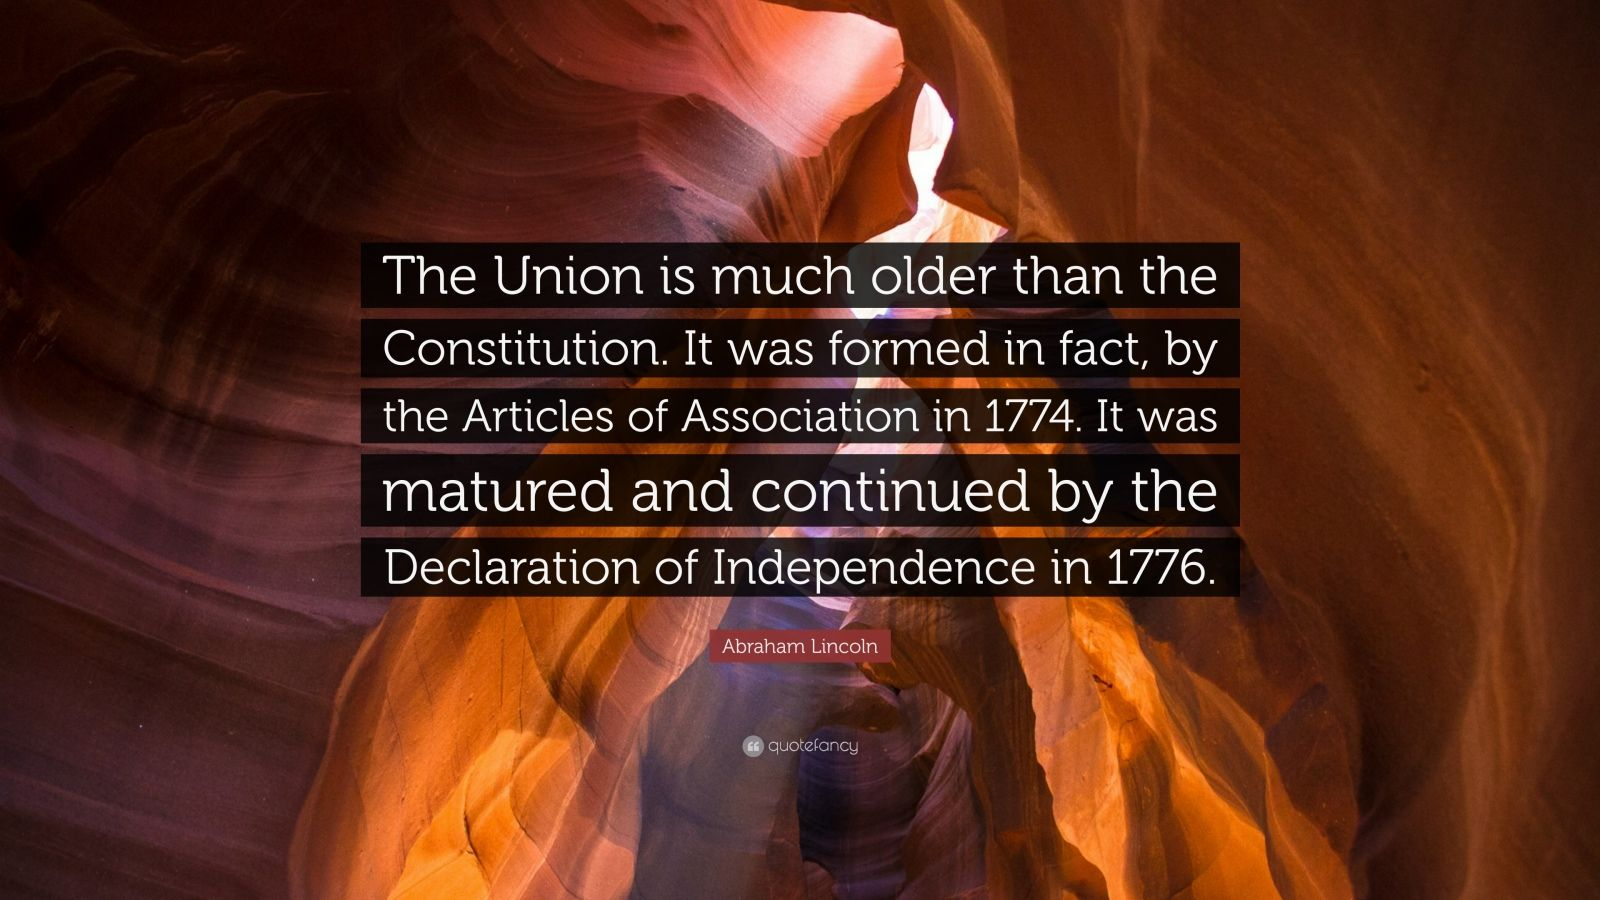 """Abraham Lincoln Quote: """"The Union is much older than the Constitution. It was formed in fact, by the Articles of Association in 1774. It was matured and continued by the Declaration of Independence in 1776."""""""